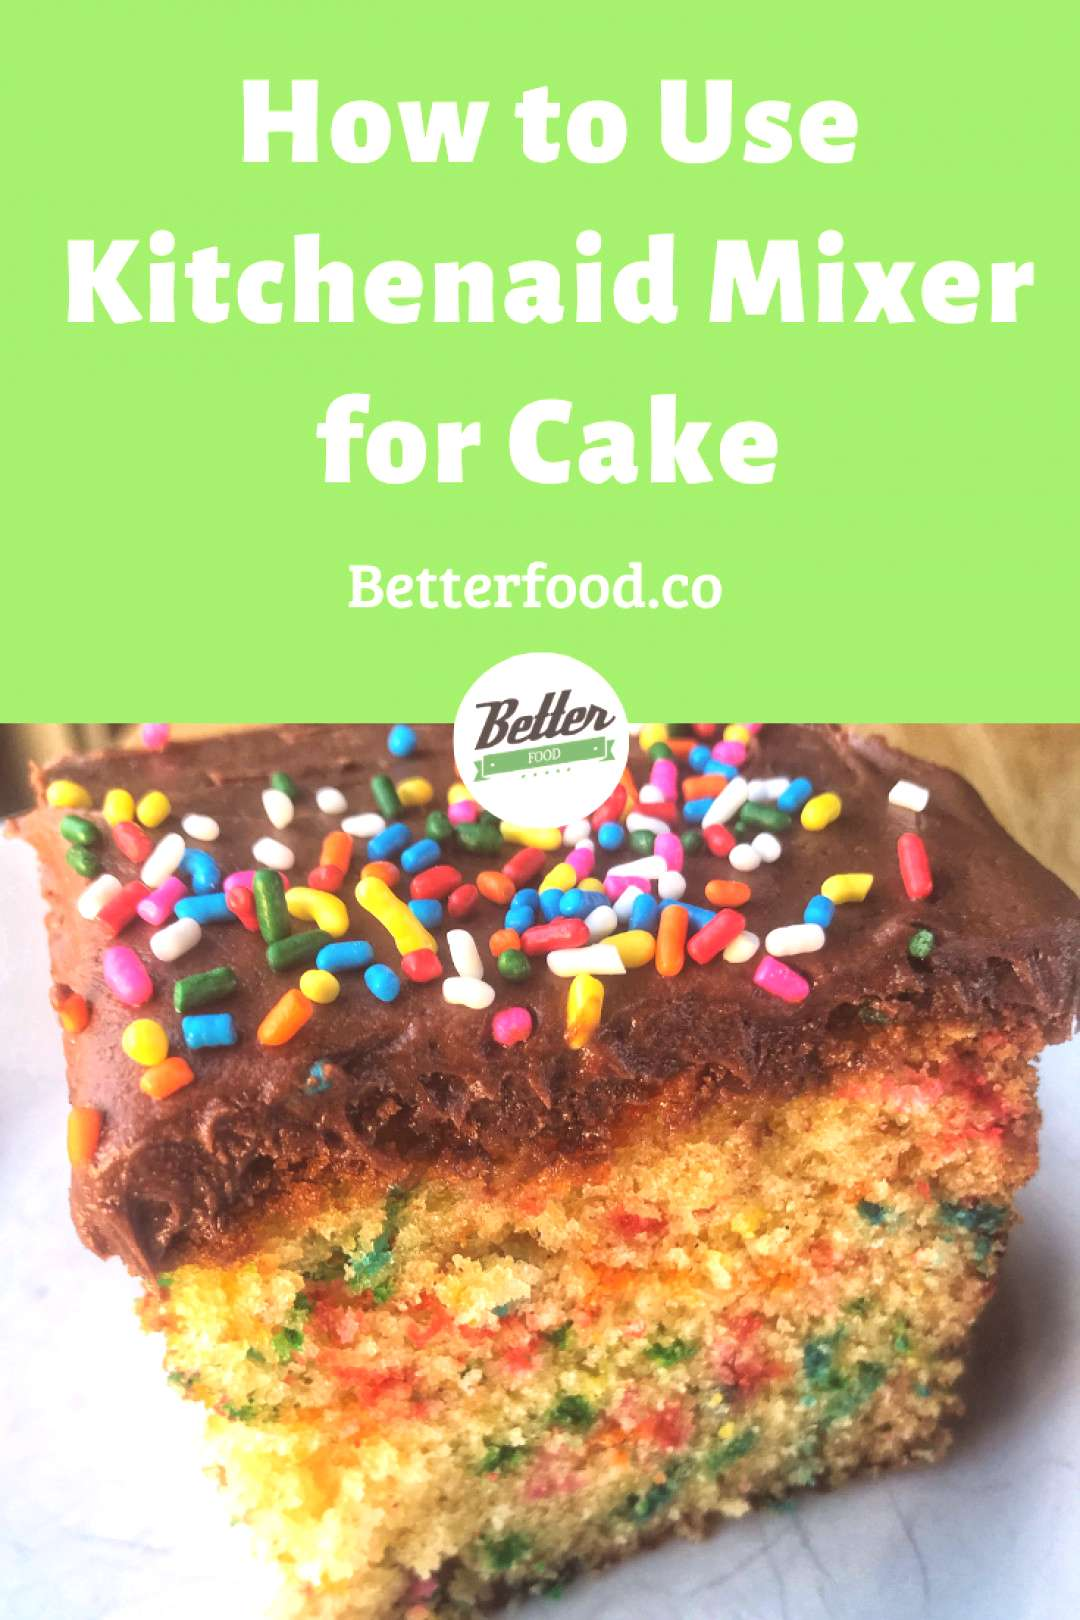 How to Use Kitchenaid Mixer for Cake? -  Bake this simple cake recipe in your KitchenAid stand mix